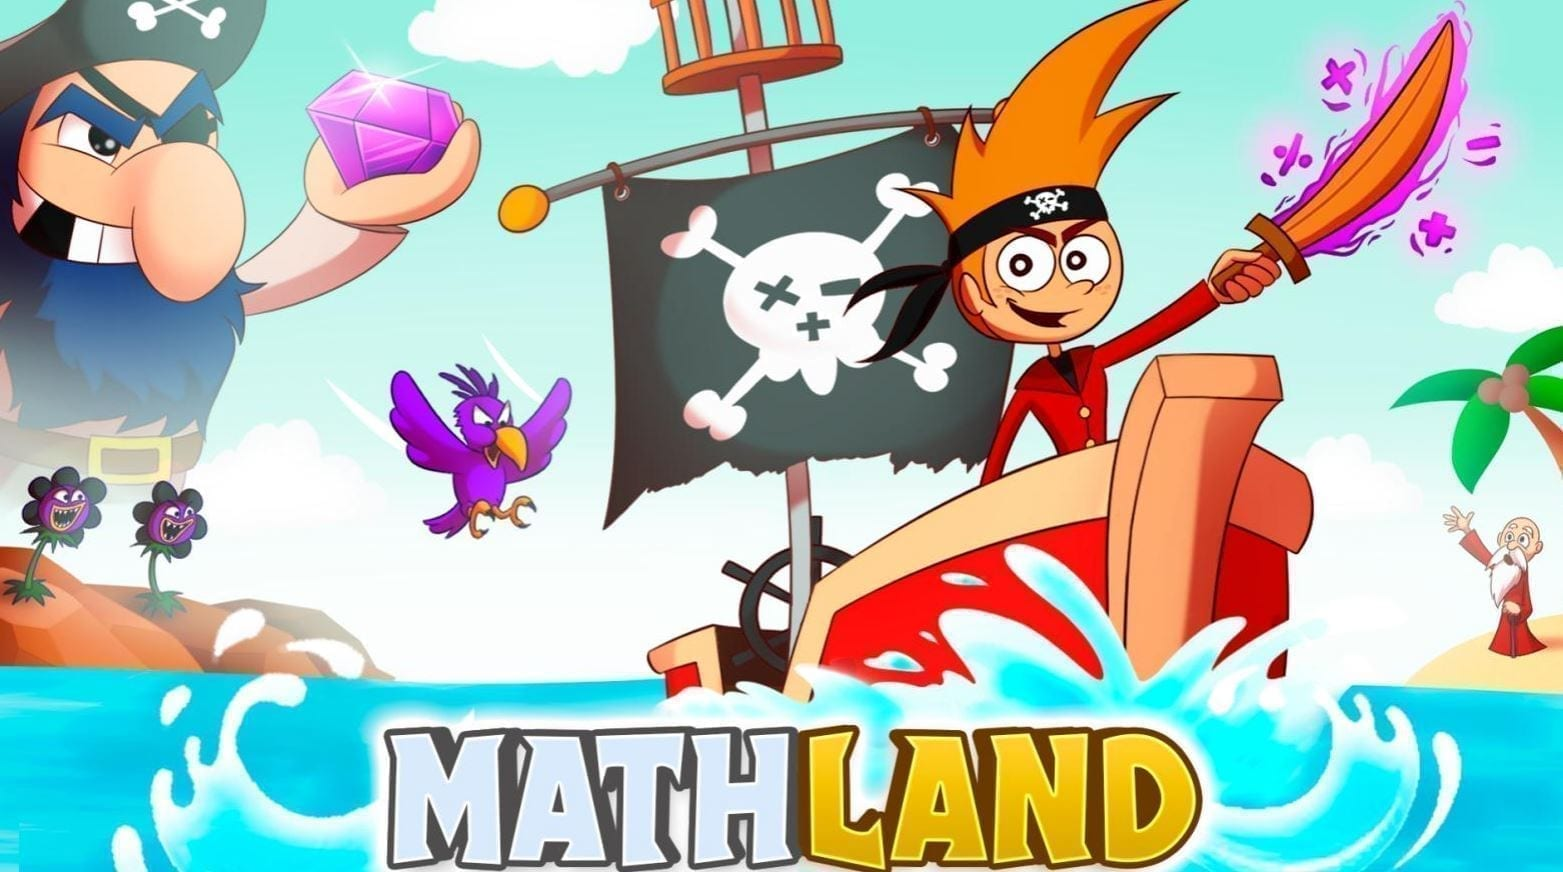 Edu Mathland